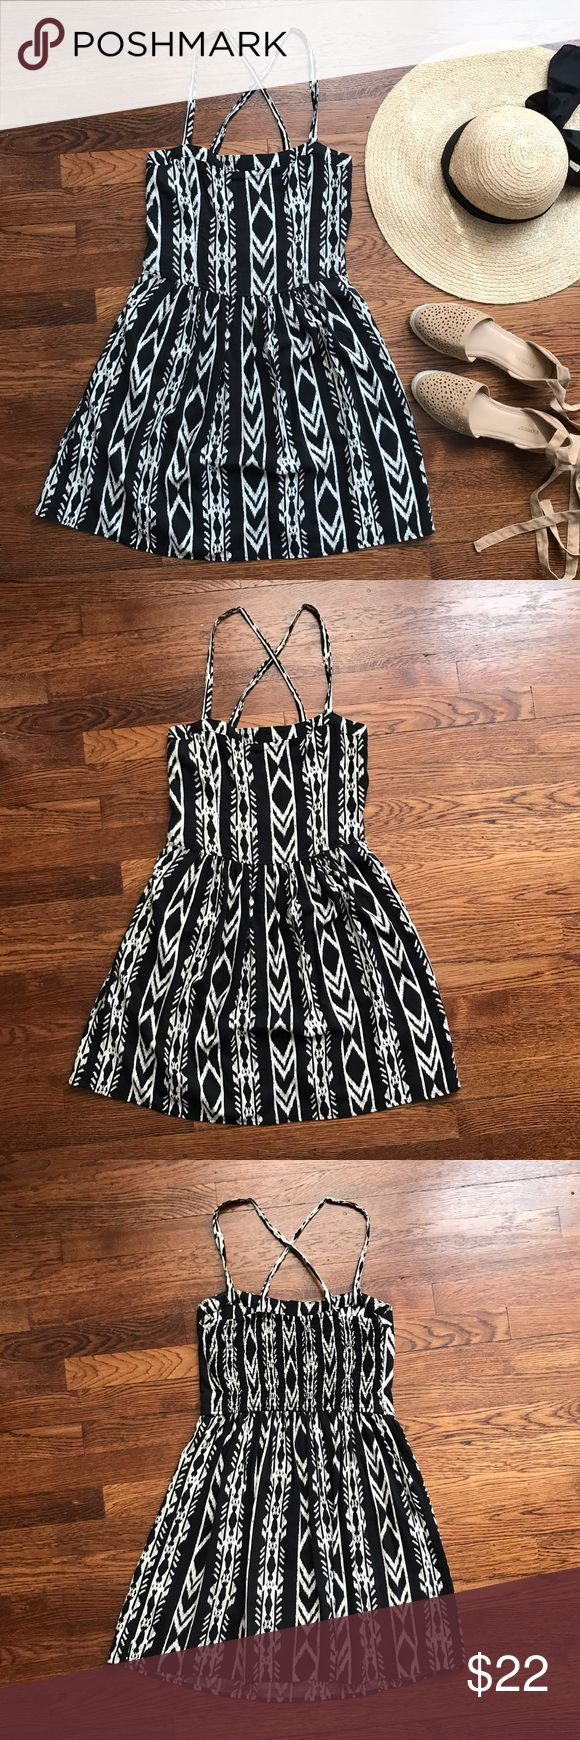 "A&F Aztec Print Sundress Great condition! Super soft and flowy dress, criss cross straps, stretchy backing for easy wear  • 100% Viscose • 27"" in length  • No Trading  • Reasonable Offers are Always Welcomed • Low ball offers will be declined •  Me For a Bundle Discount! Abercrombie & Fitch Dresses"